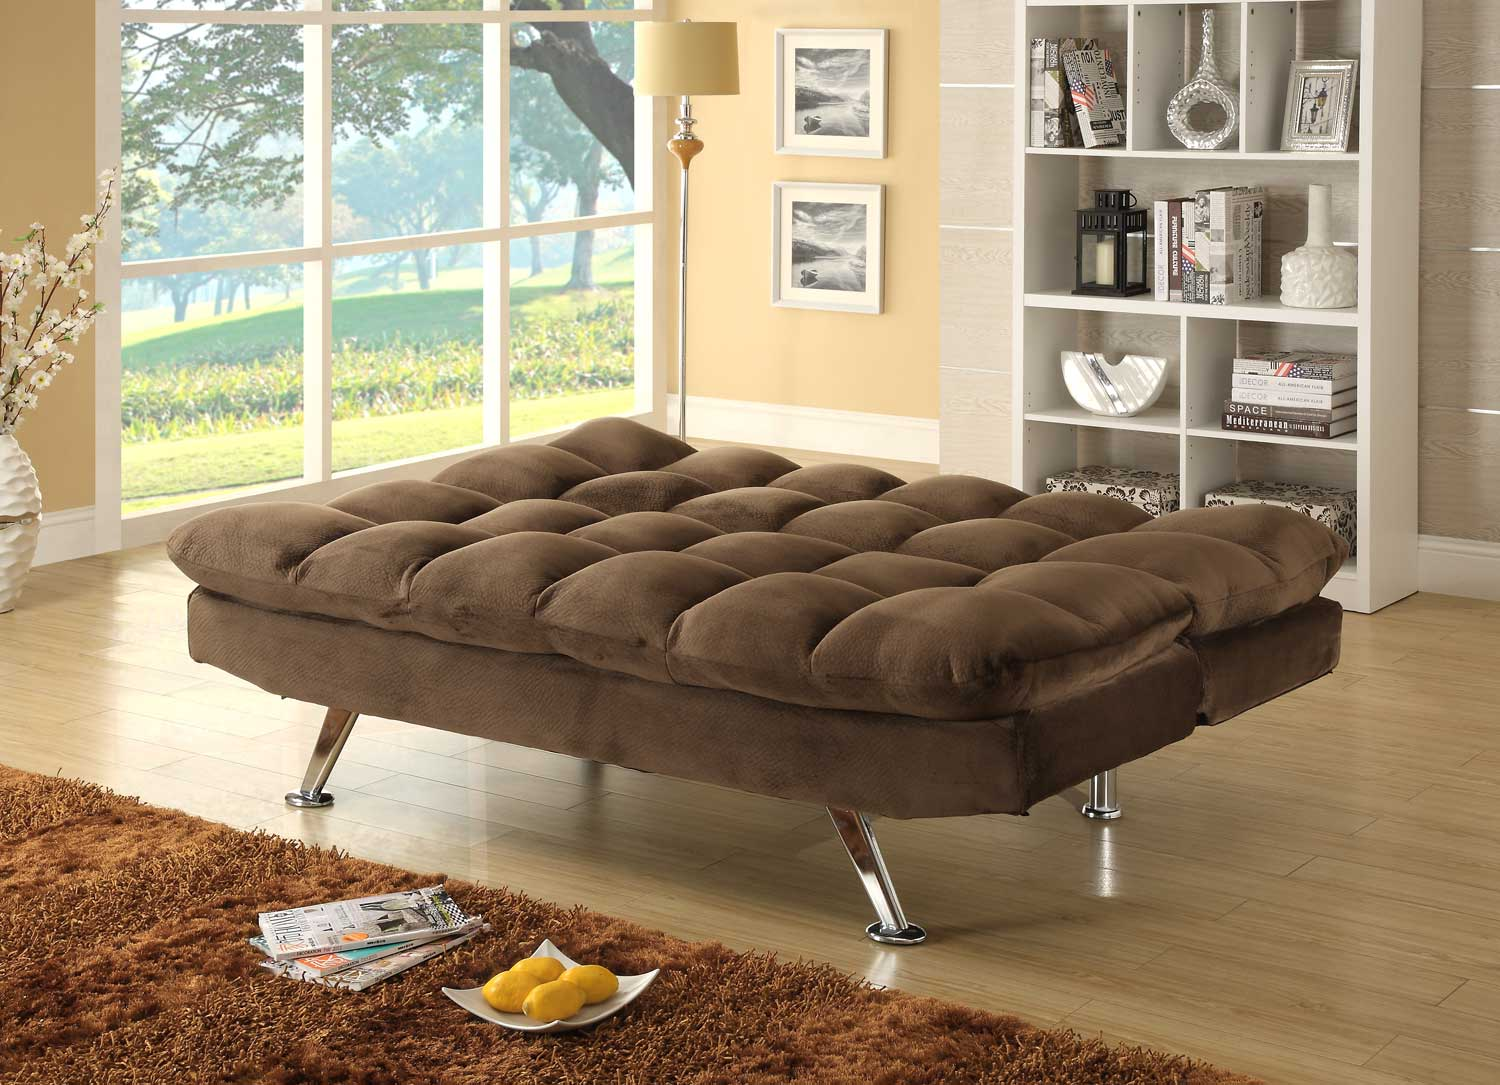 homelegance jazz click clack sofa bed chocolate textured plush microfiber 4809ch at. Black Bedroom Furniture Sets. Home Design Ideas